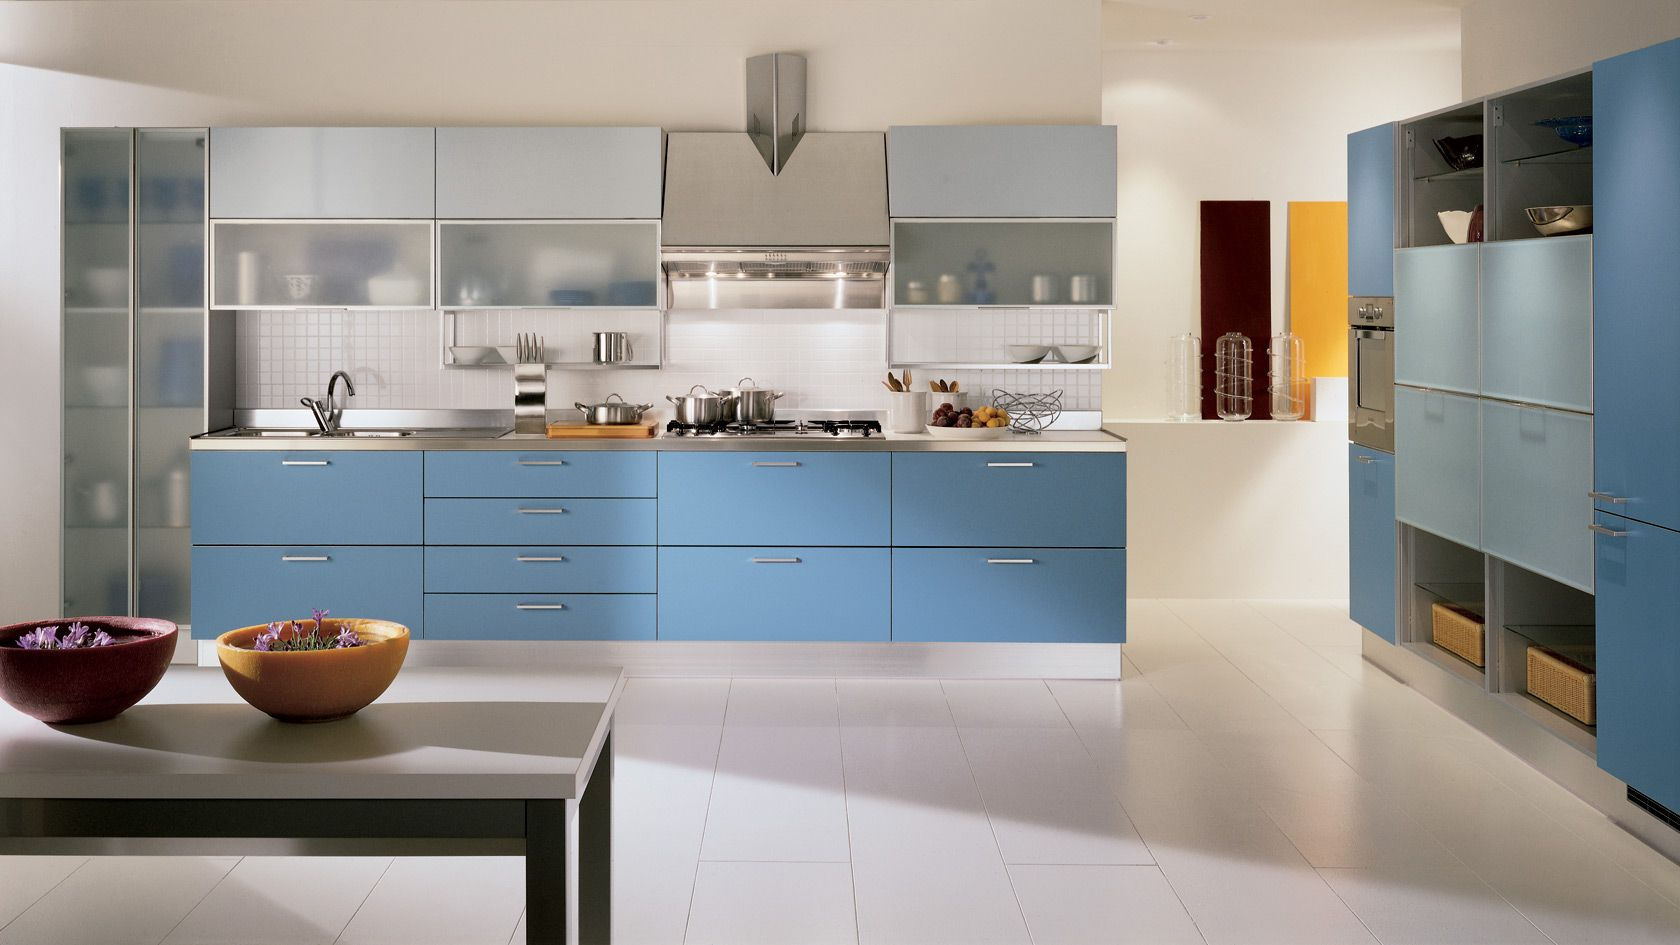 Kitchen cabinets storage with stylish shapes and colors #kitchen ...